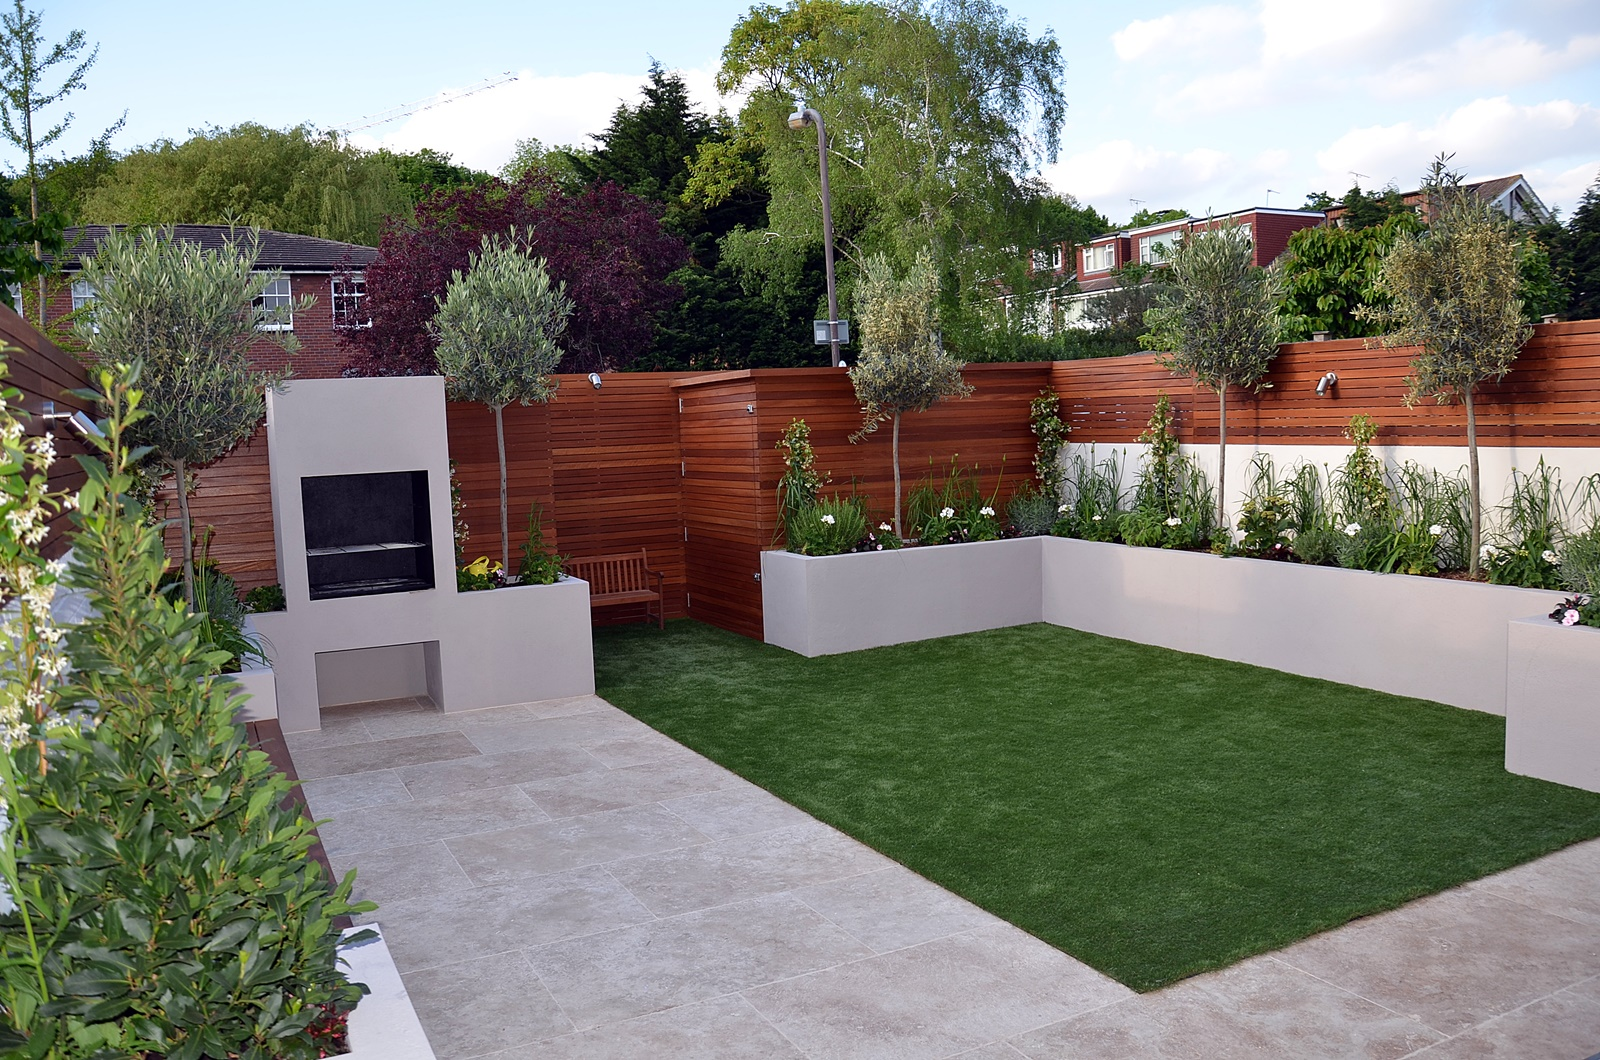 hardwood privacy screen bespoke trellisscreen fence raised beds paving BBQ fireplace garden designer london